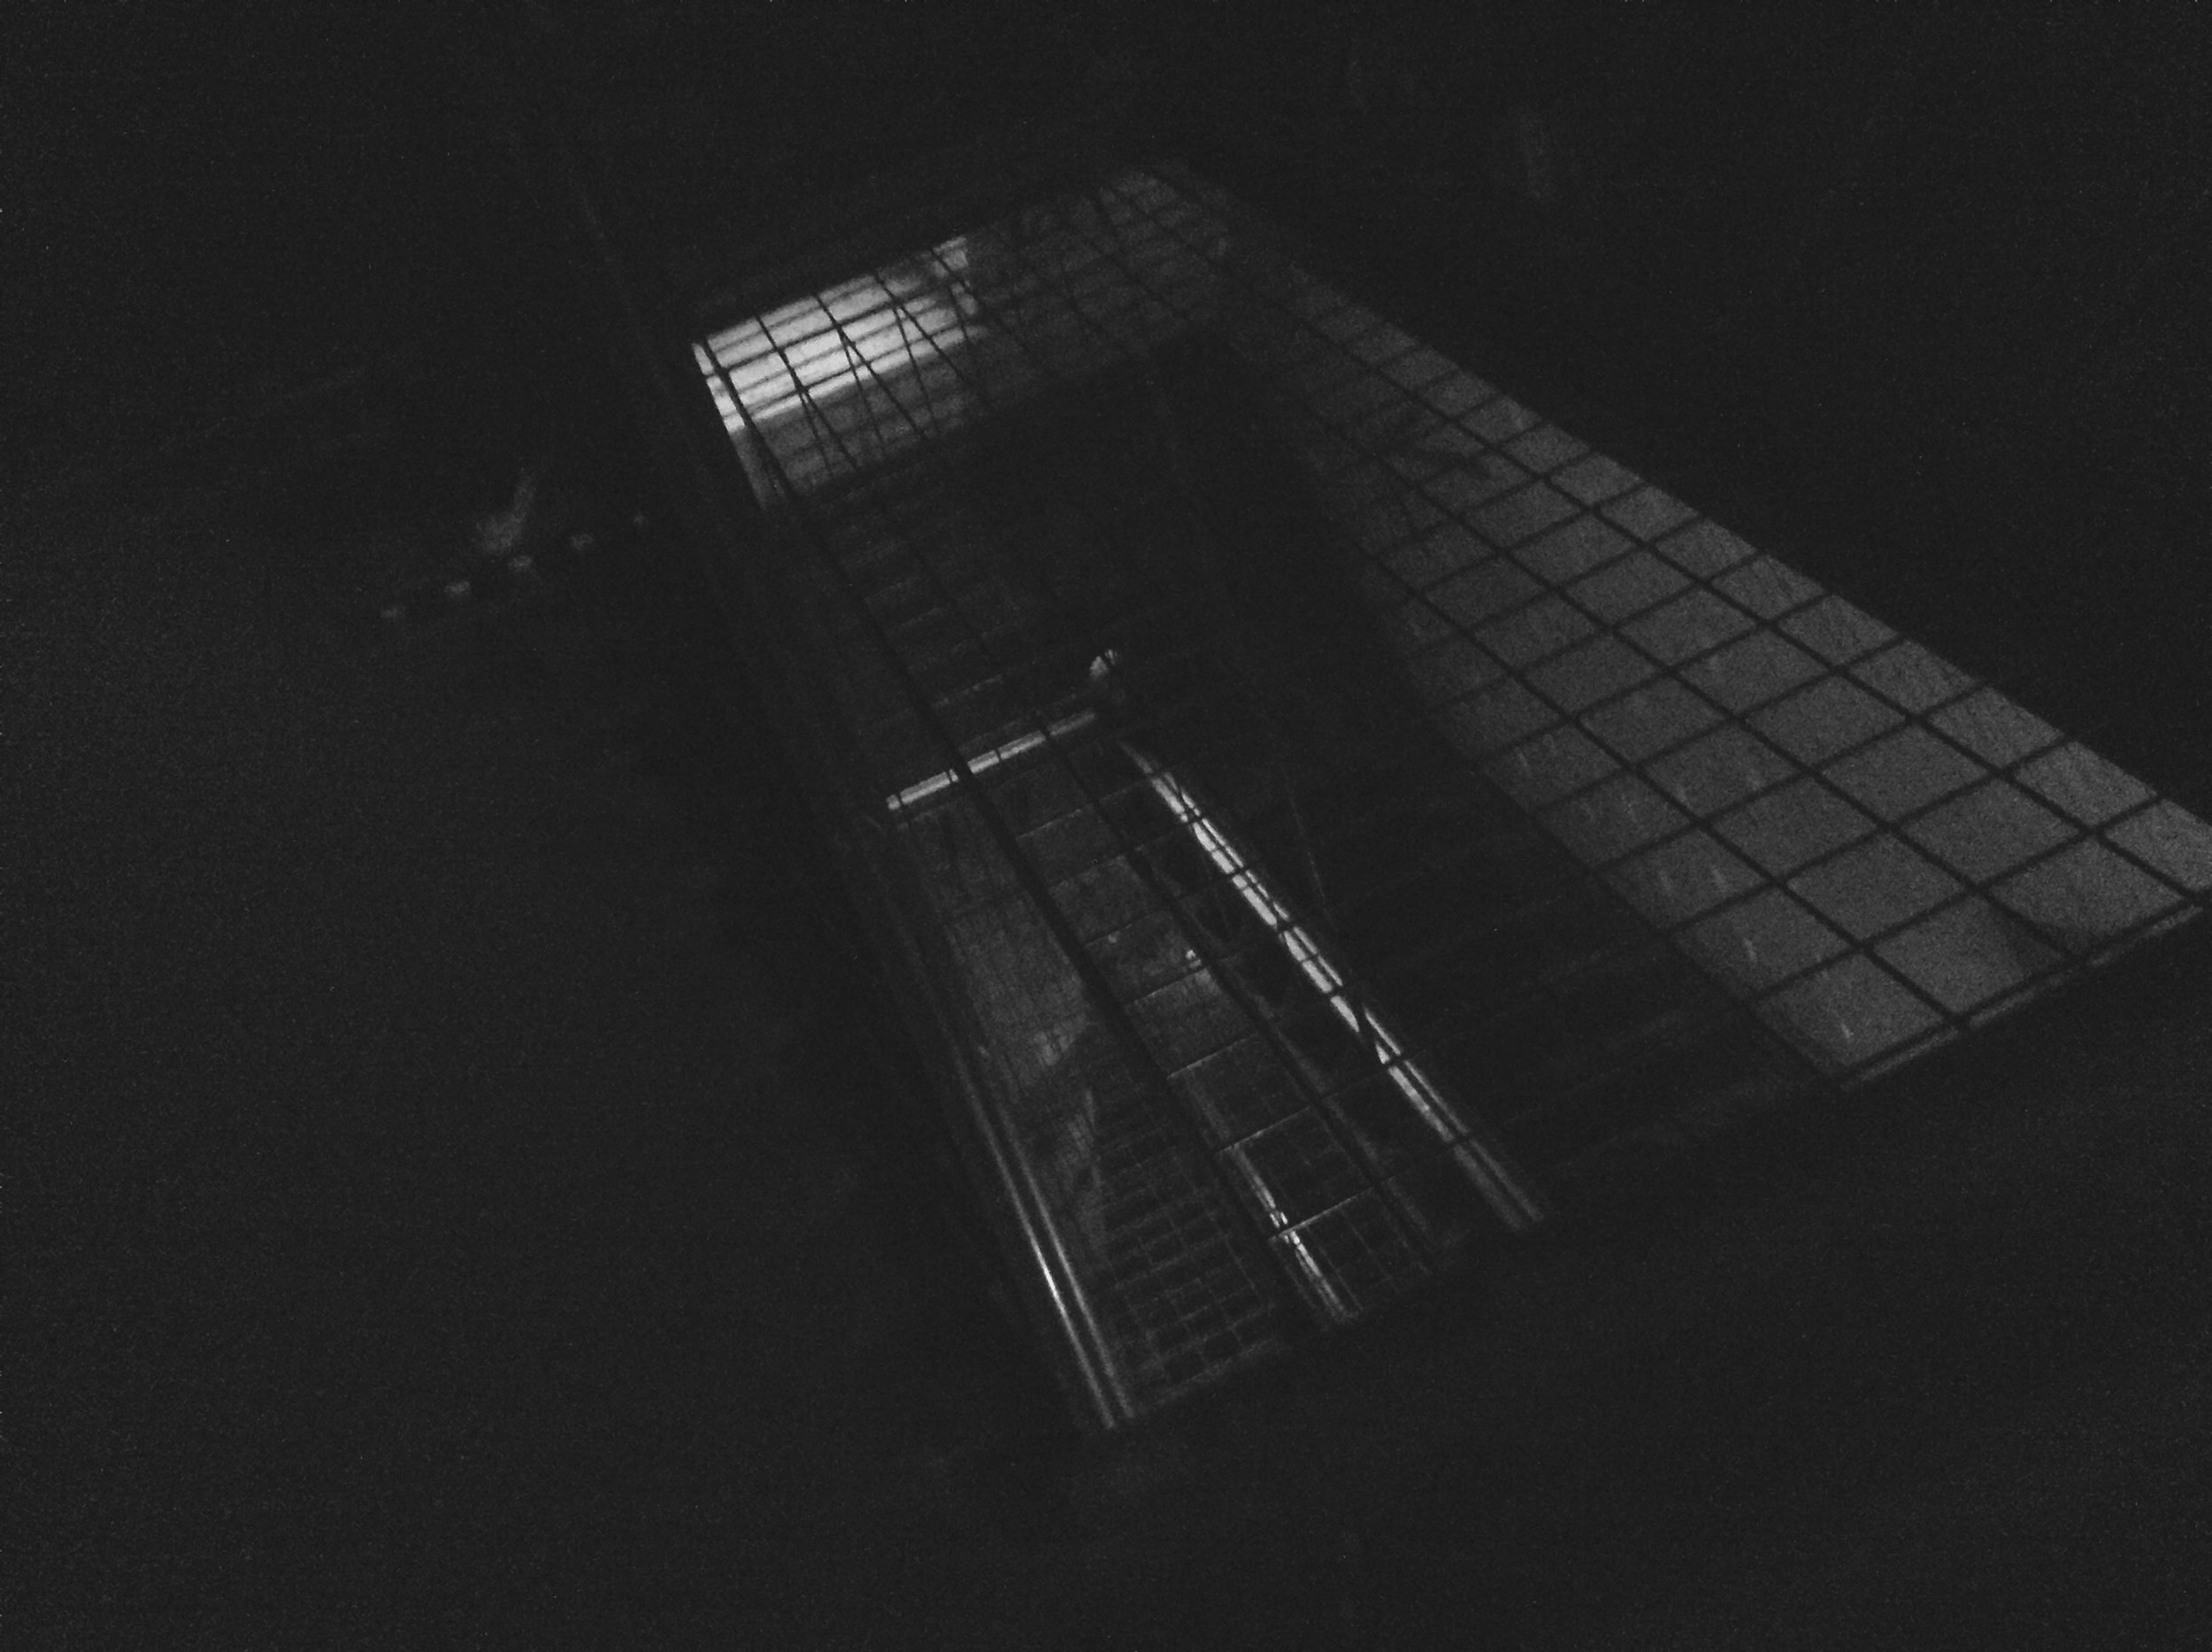 The Gallows Stairwell